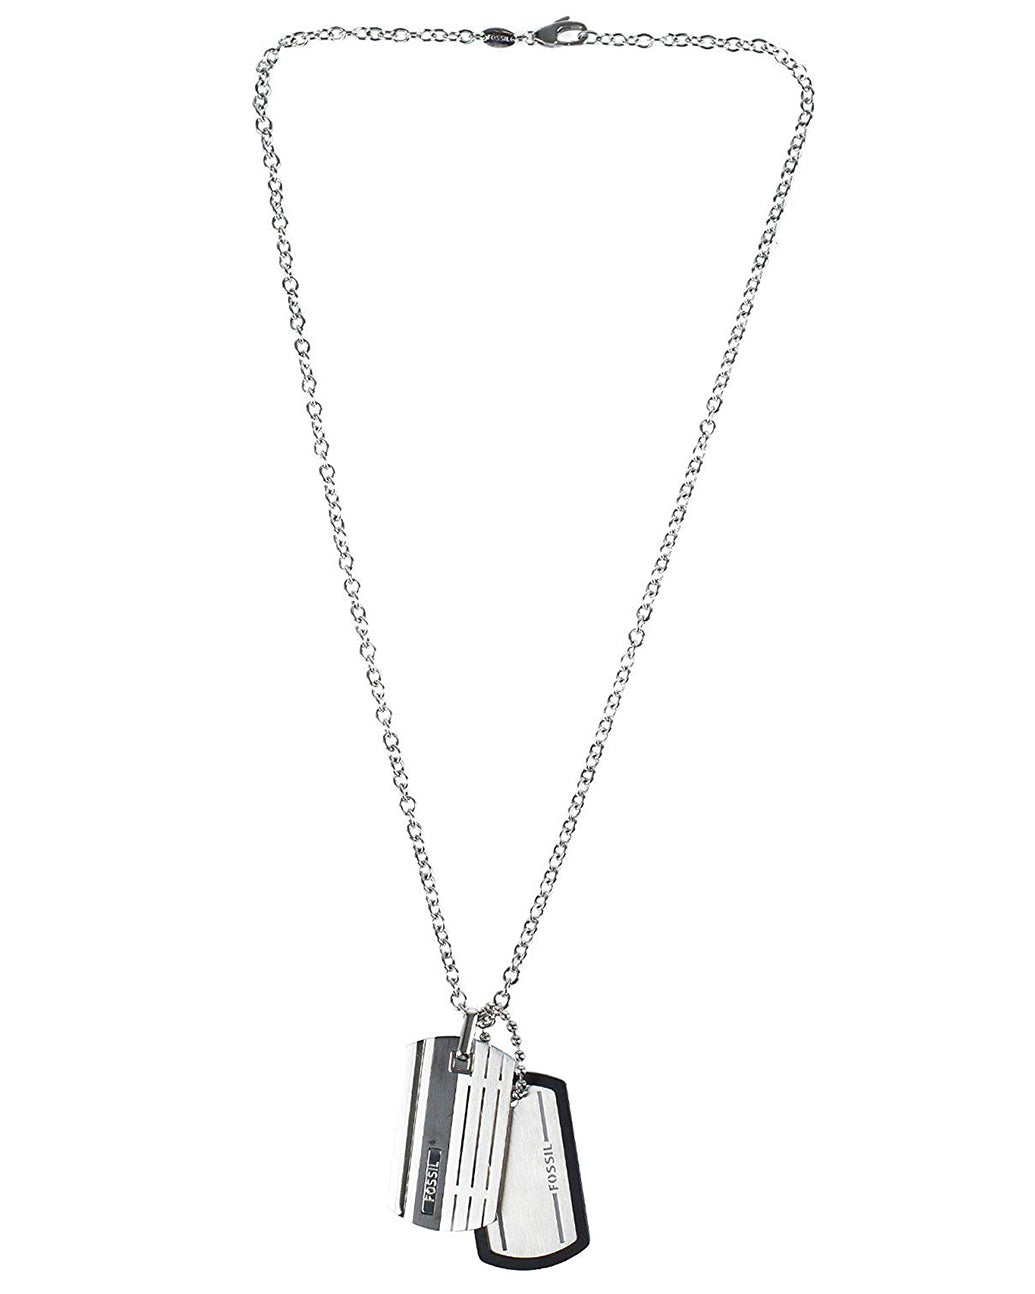 Fossil Men's Stainless Steel Casual Necklace